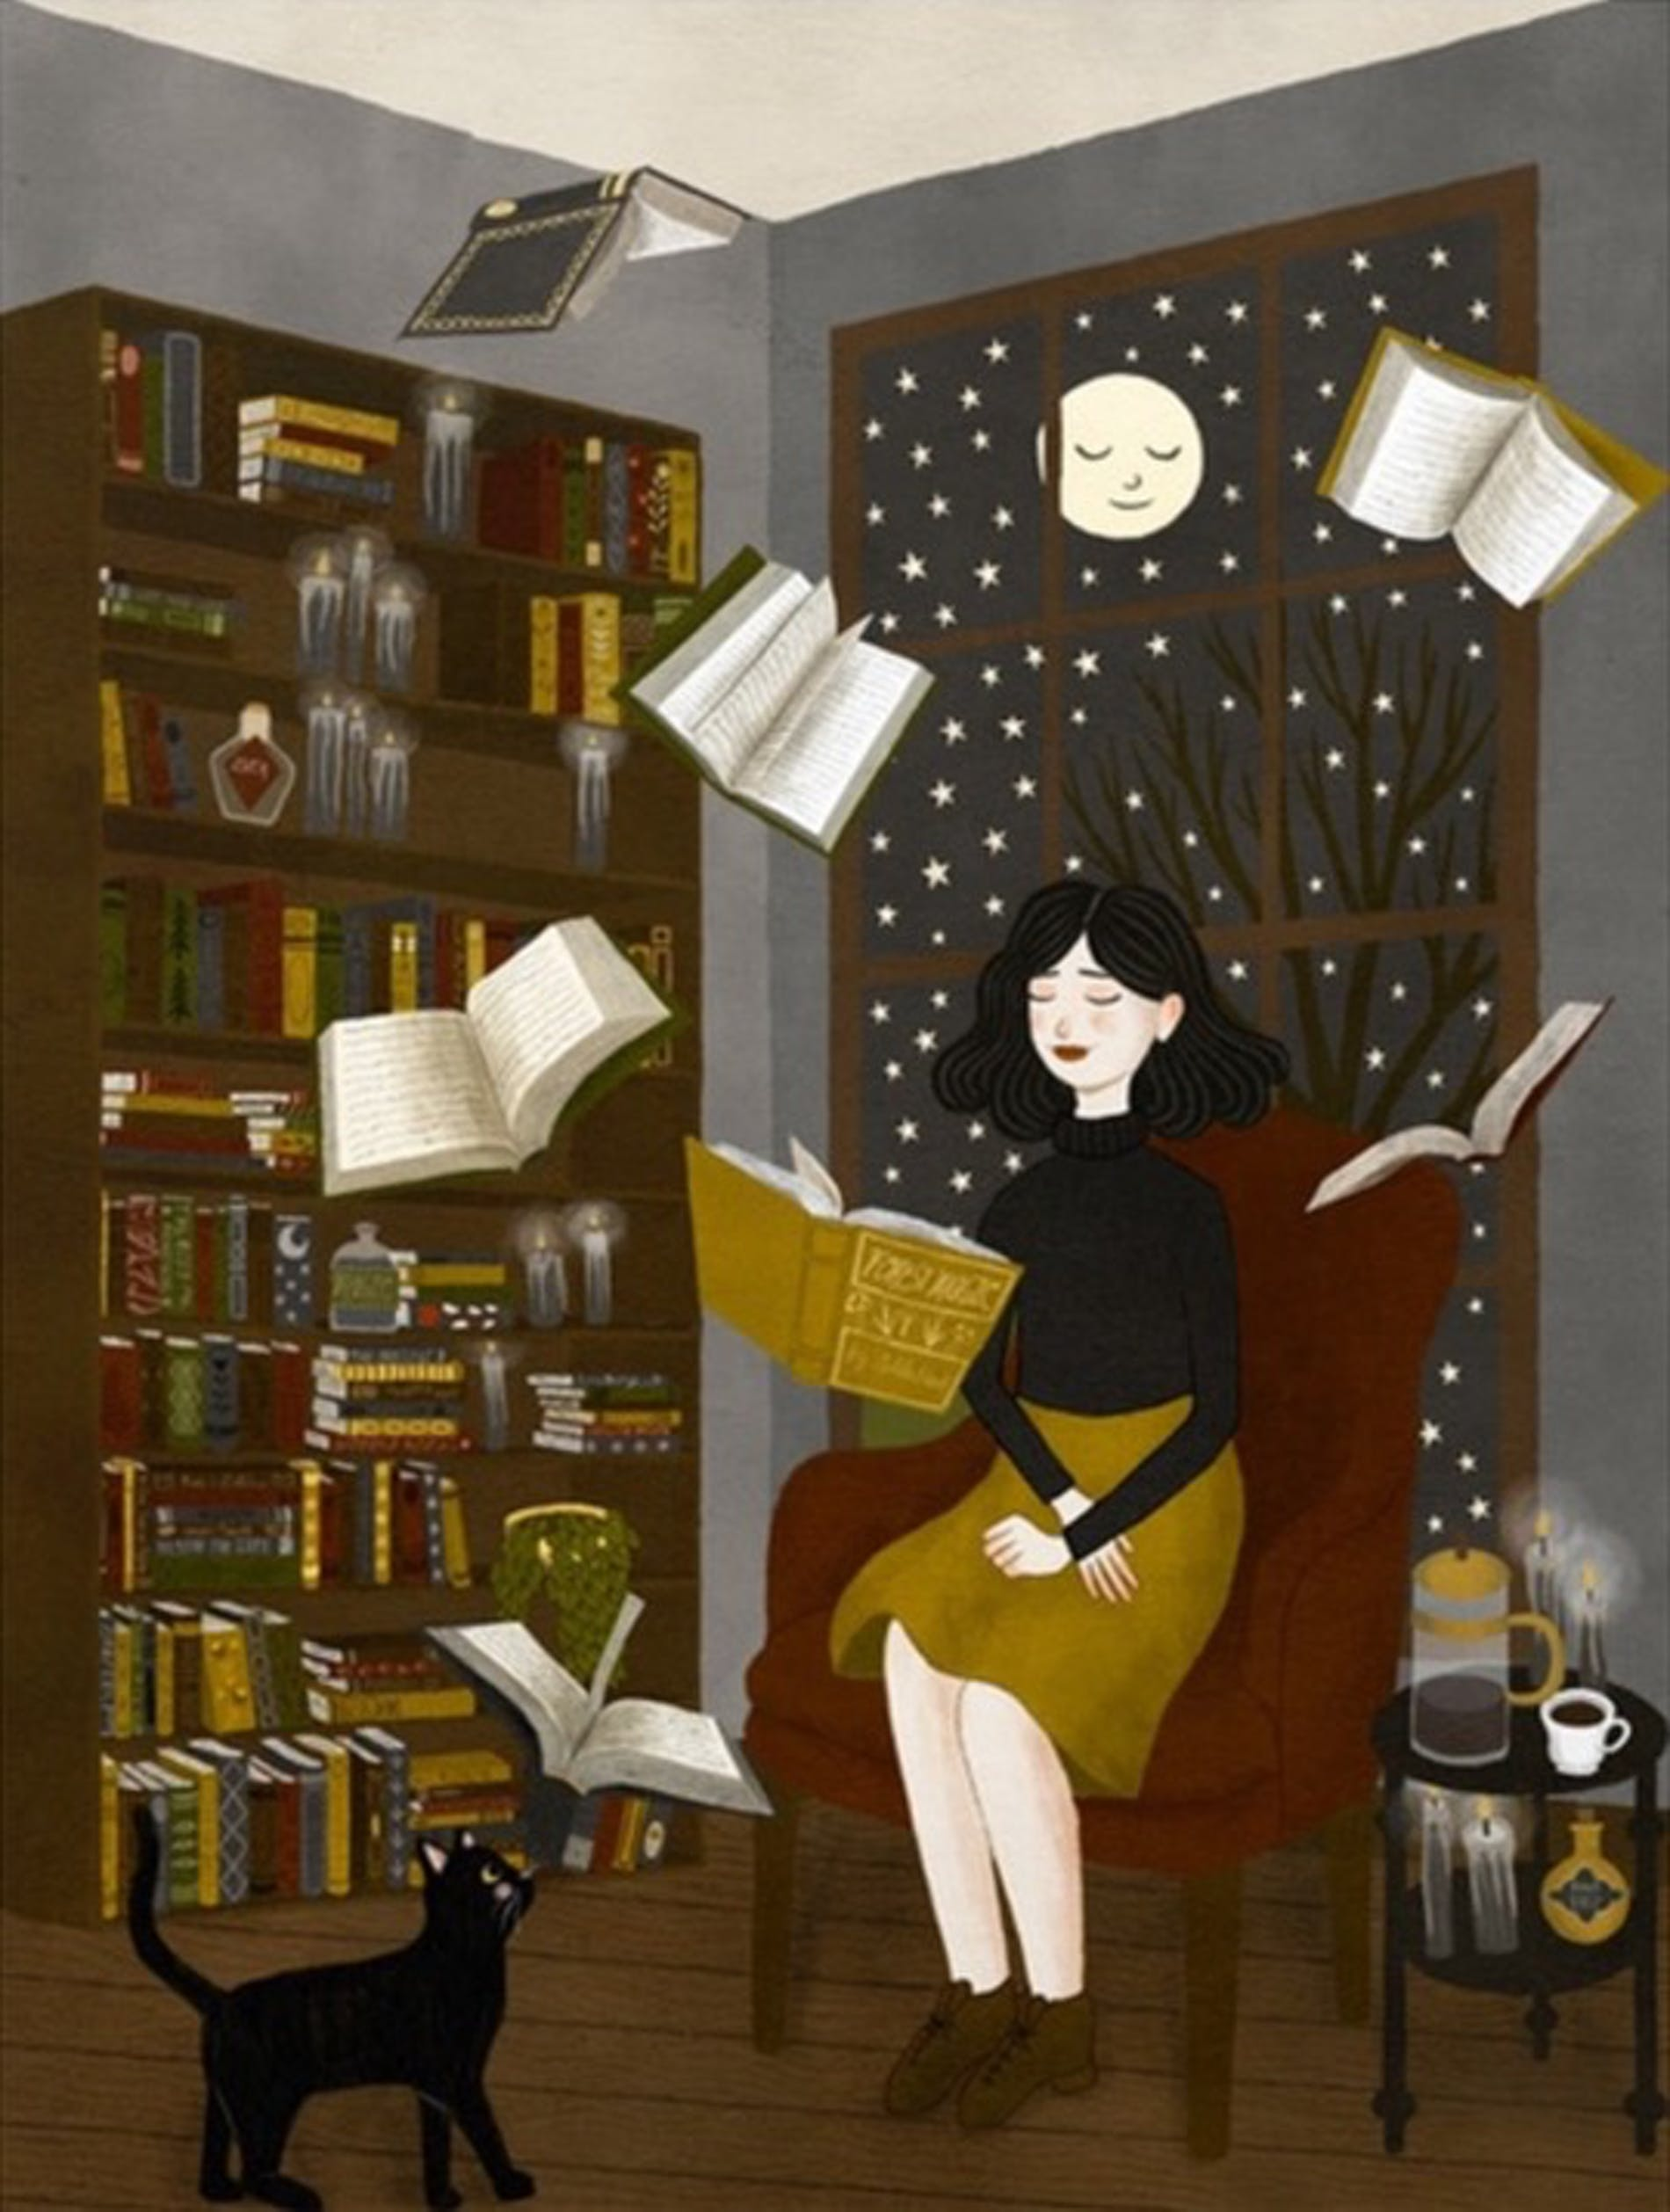 1631614492272008 illustrations about books annya marttinen reading at home